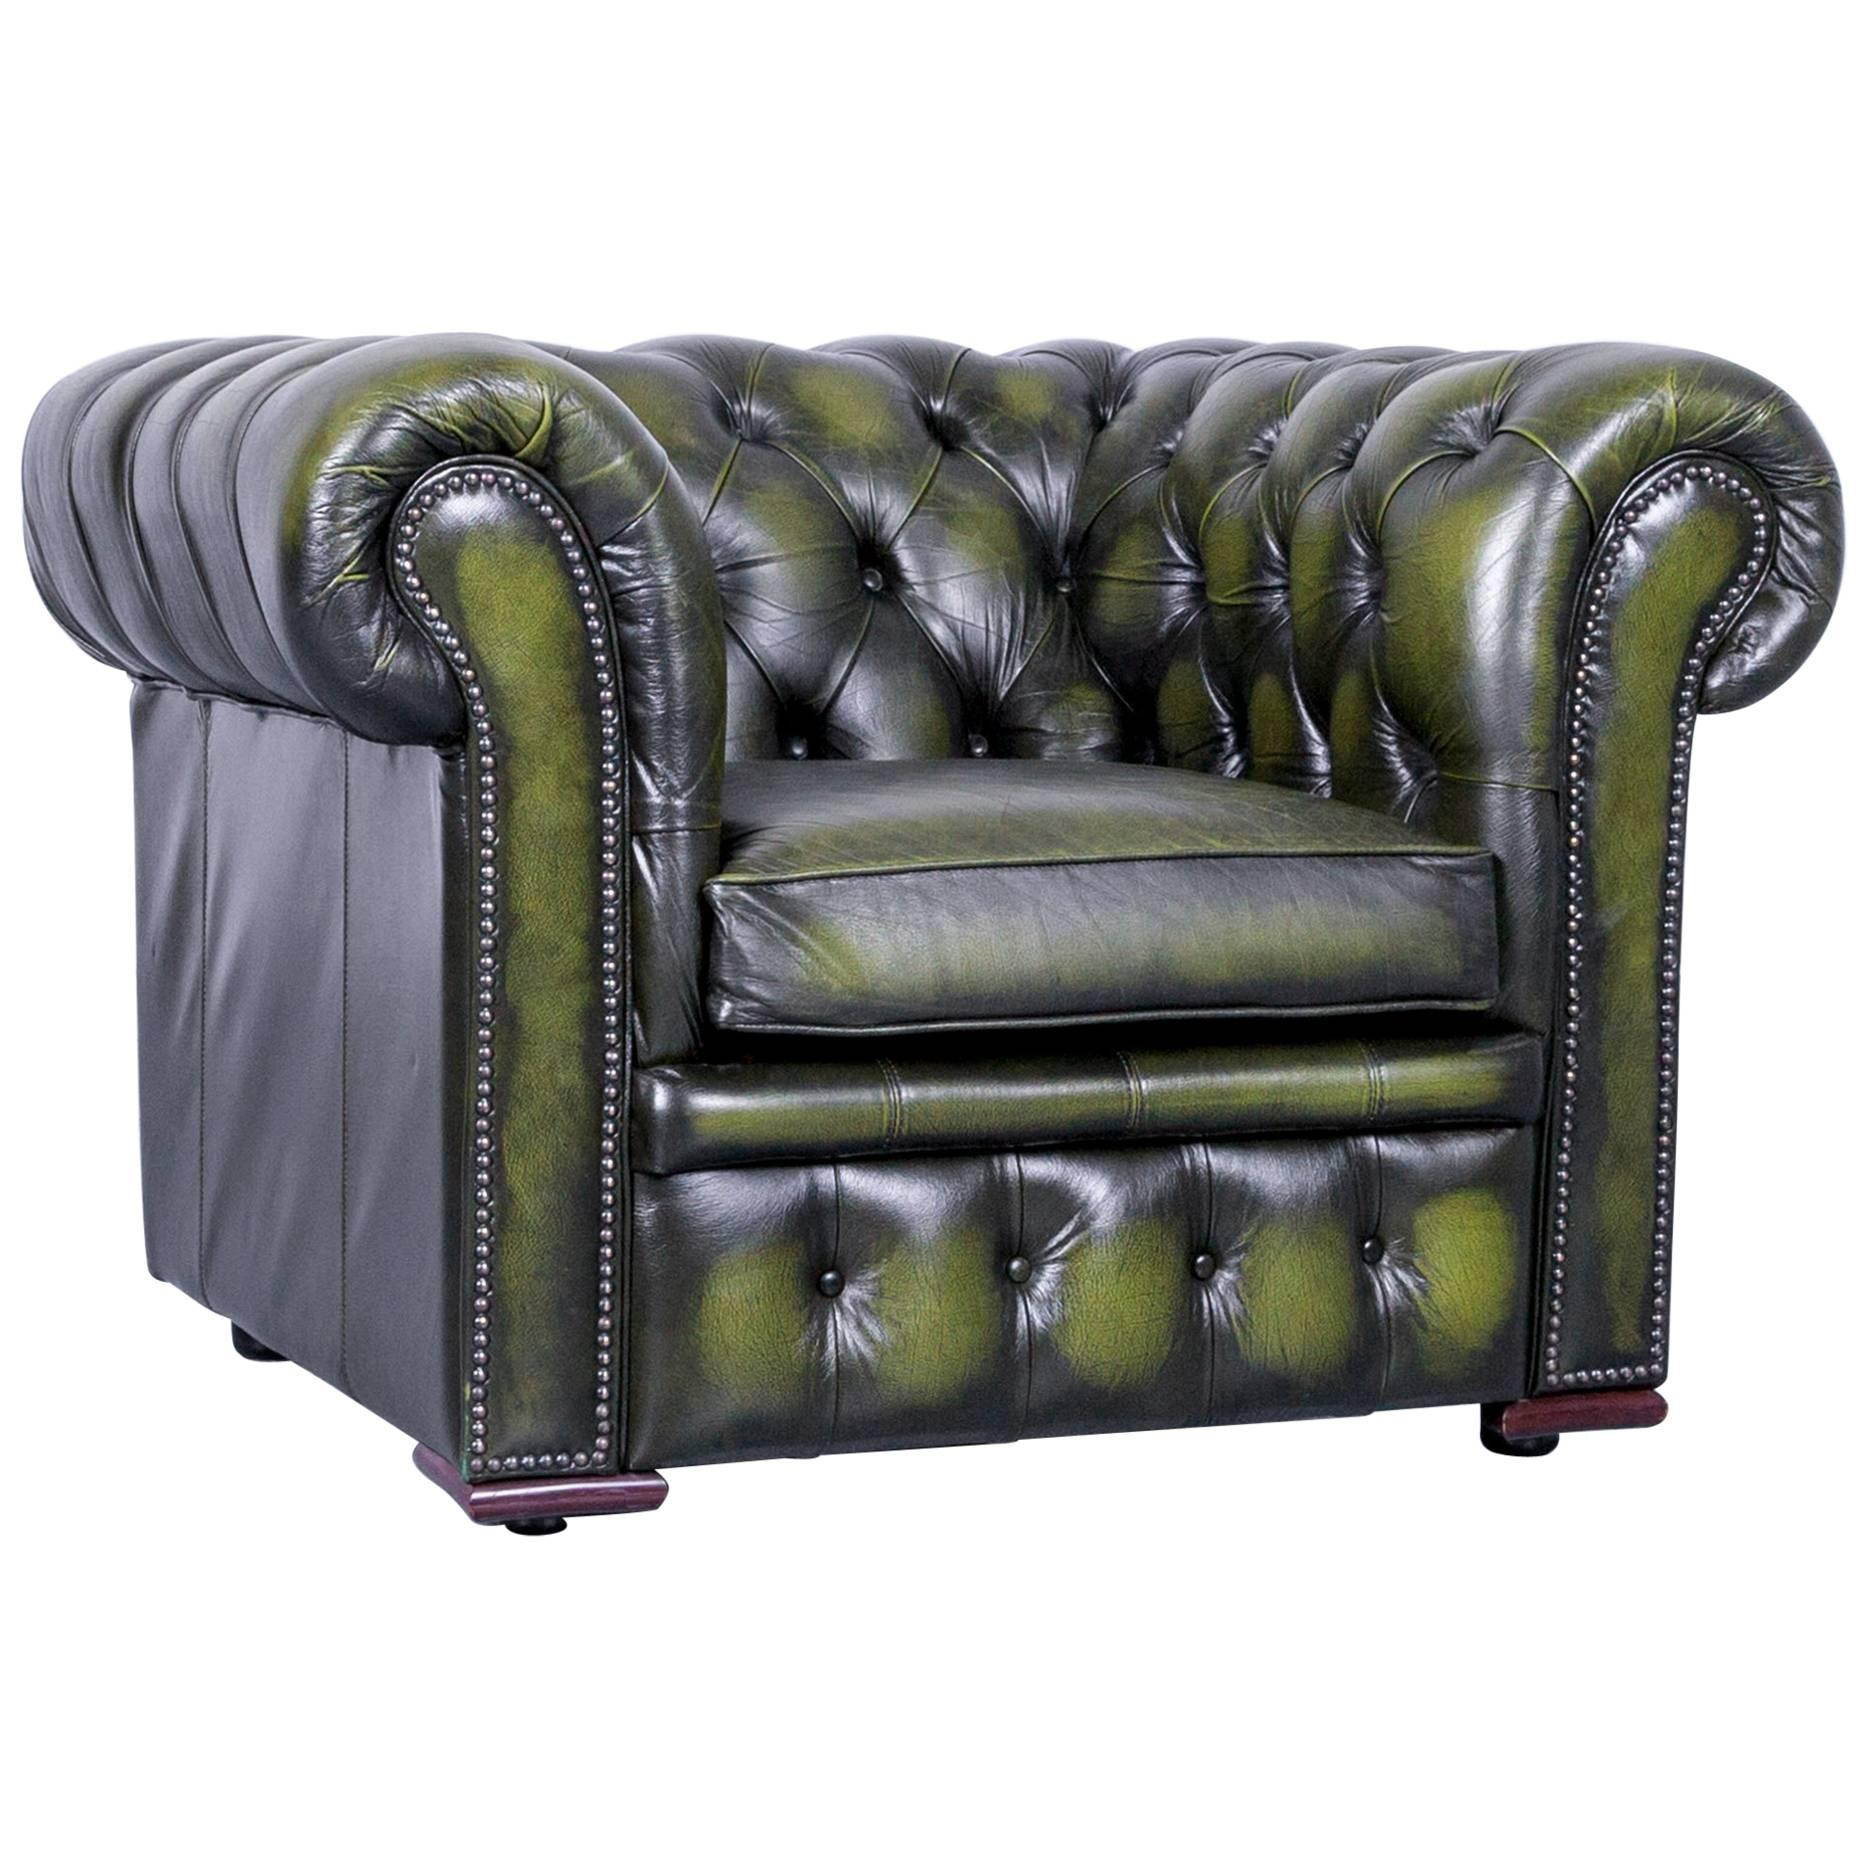 Superieur Vintage Green Chesterfield Leather Buttoned Clubchair